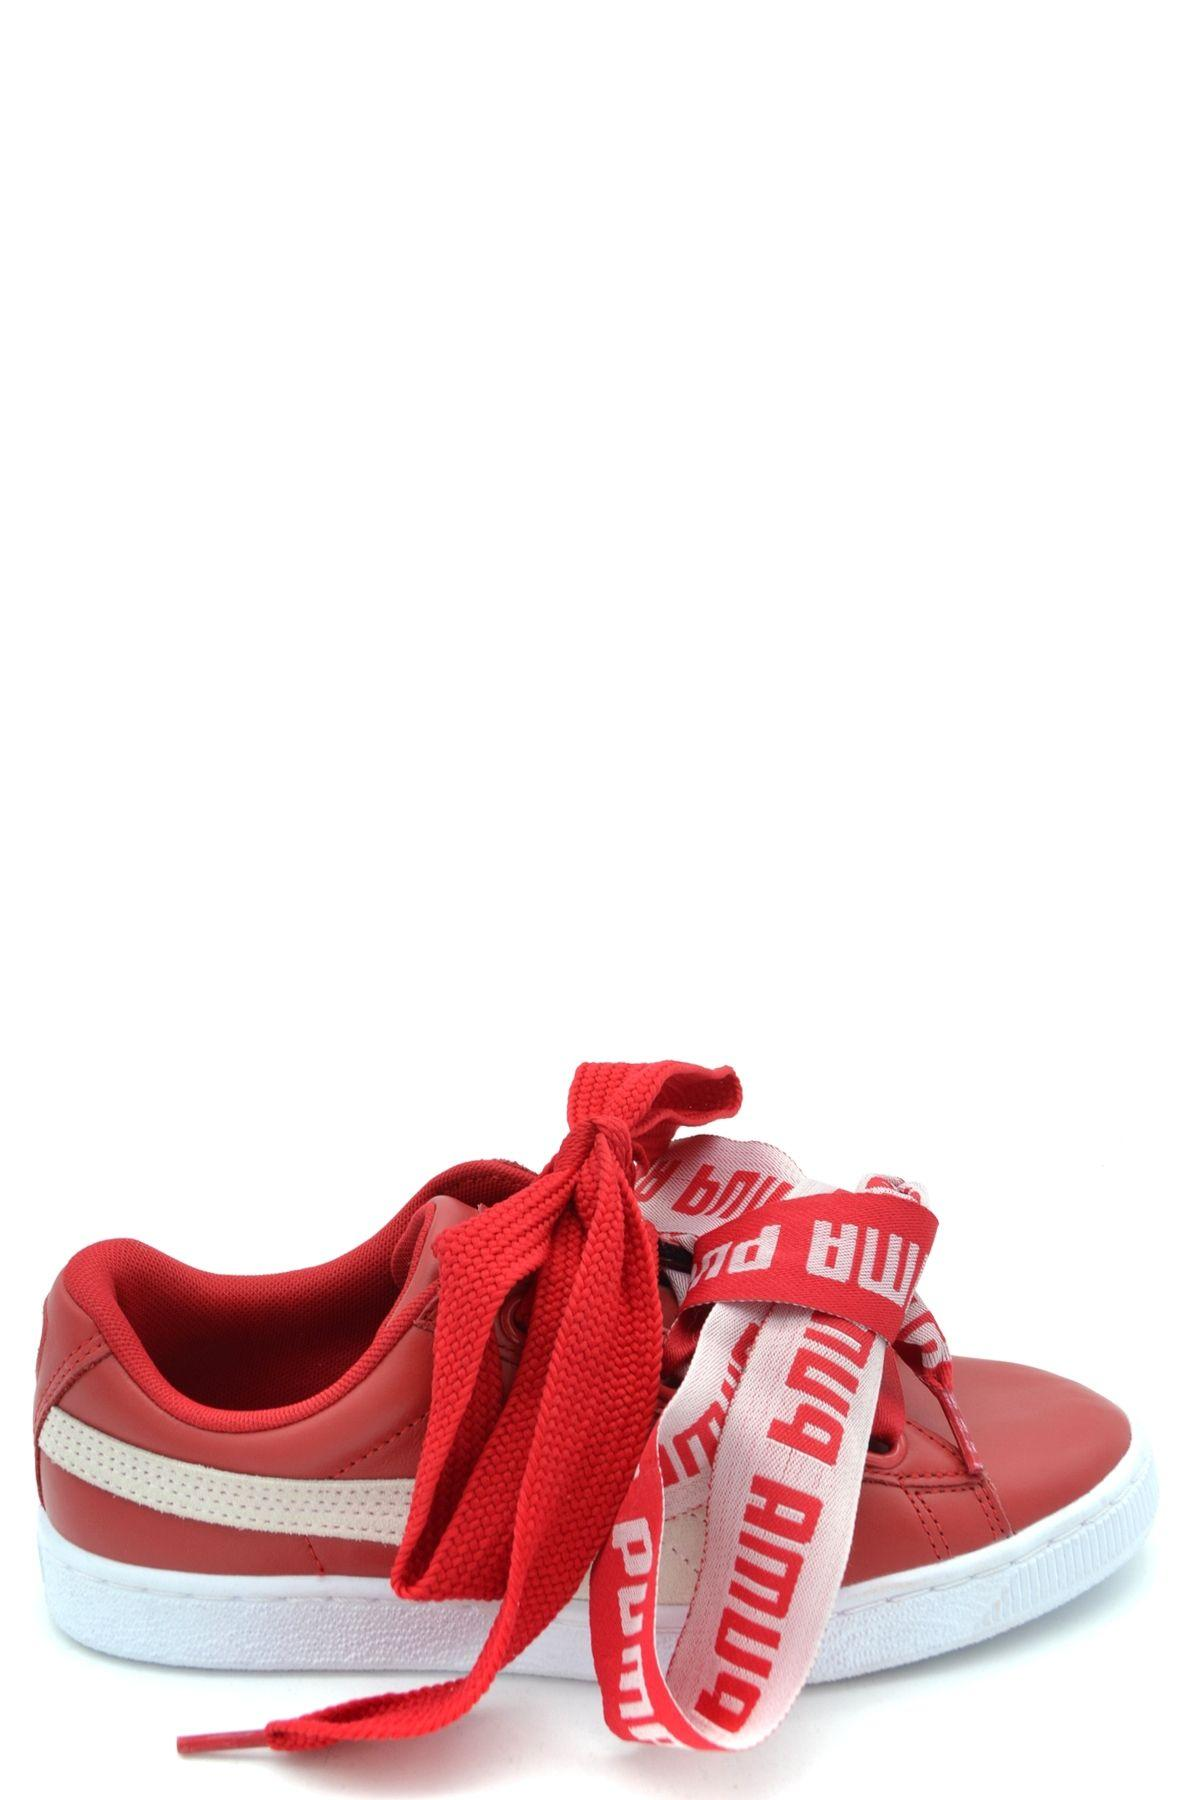 PUMA Trainers in Red/White (Red) - Lyst